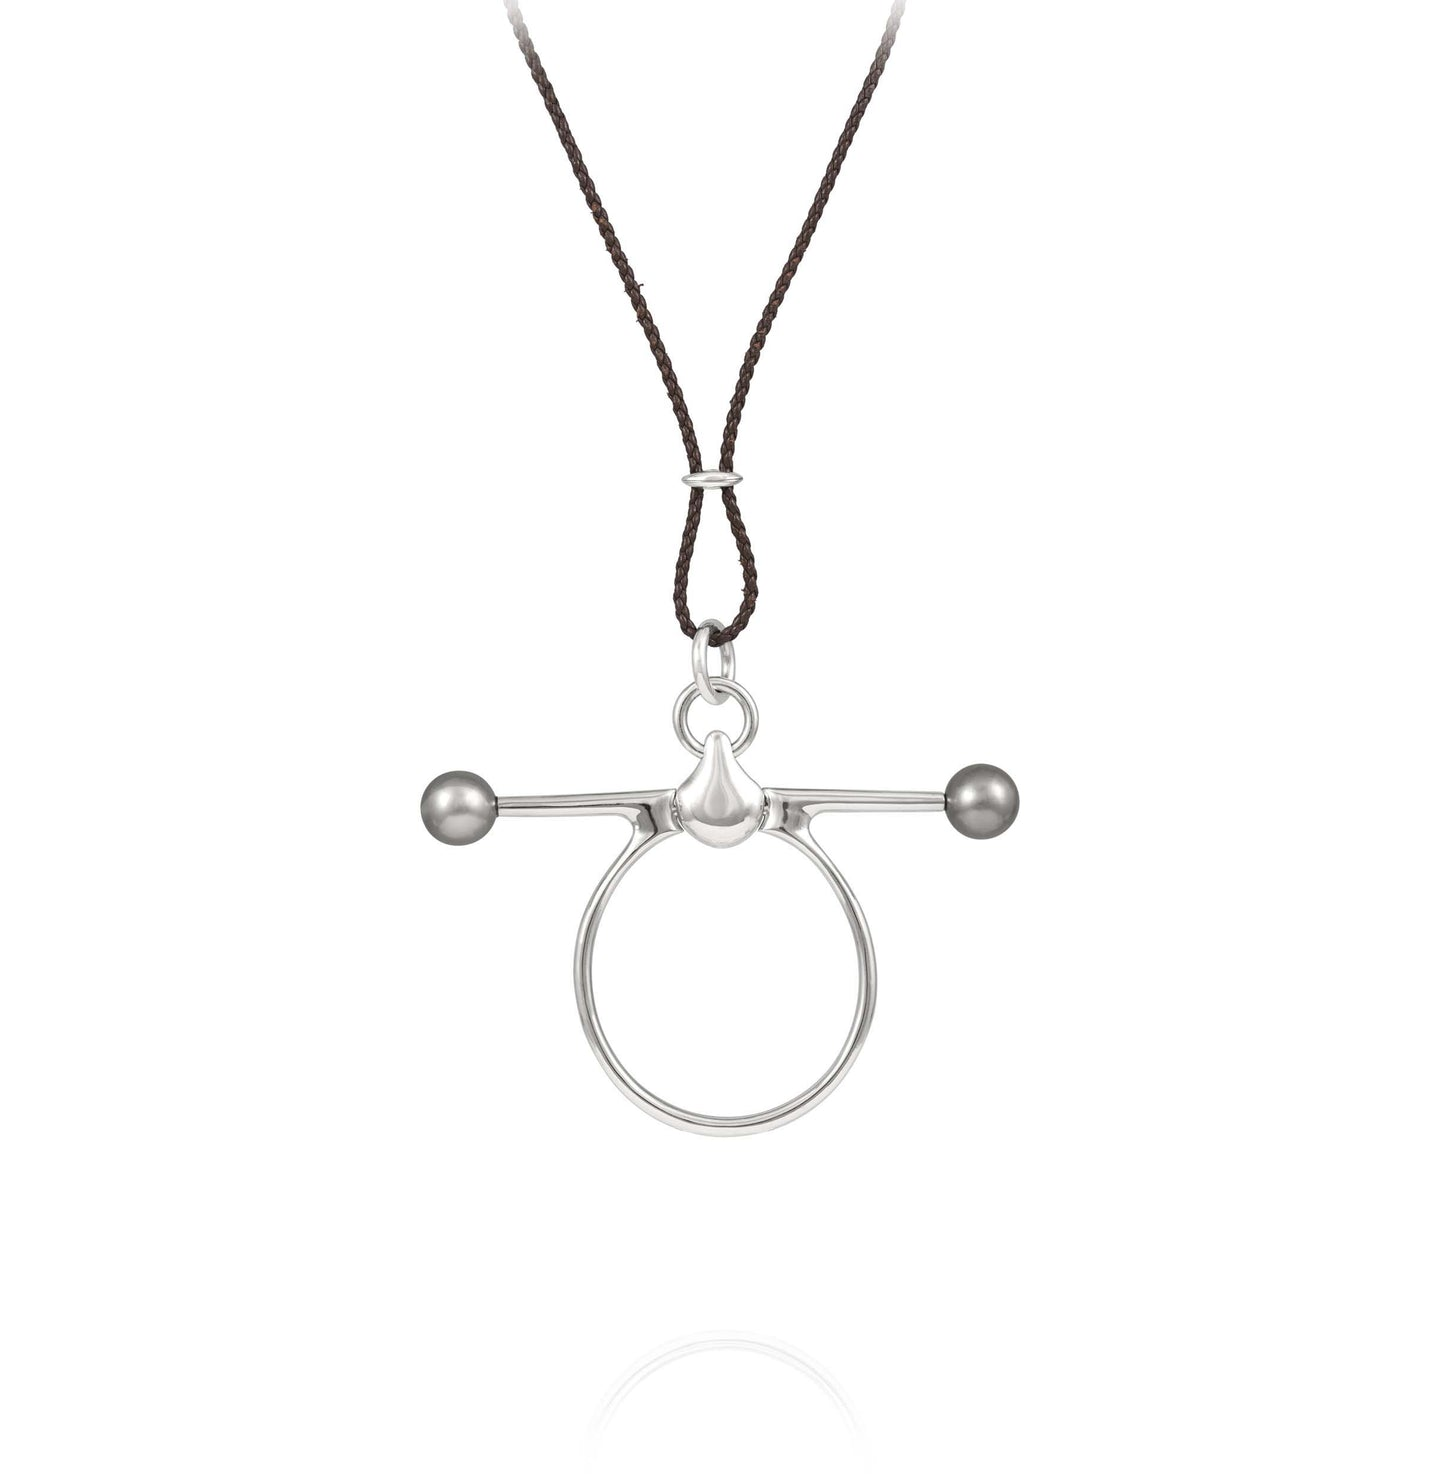 Le Dressage Necklace